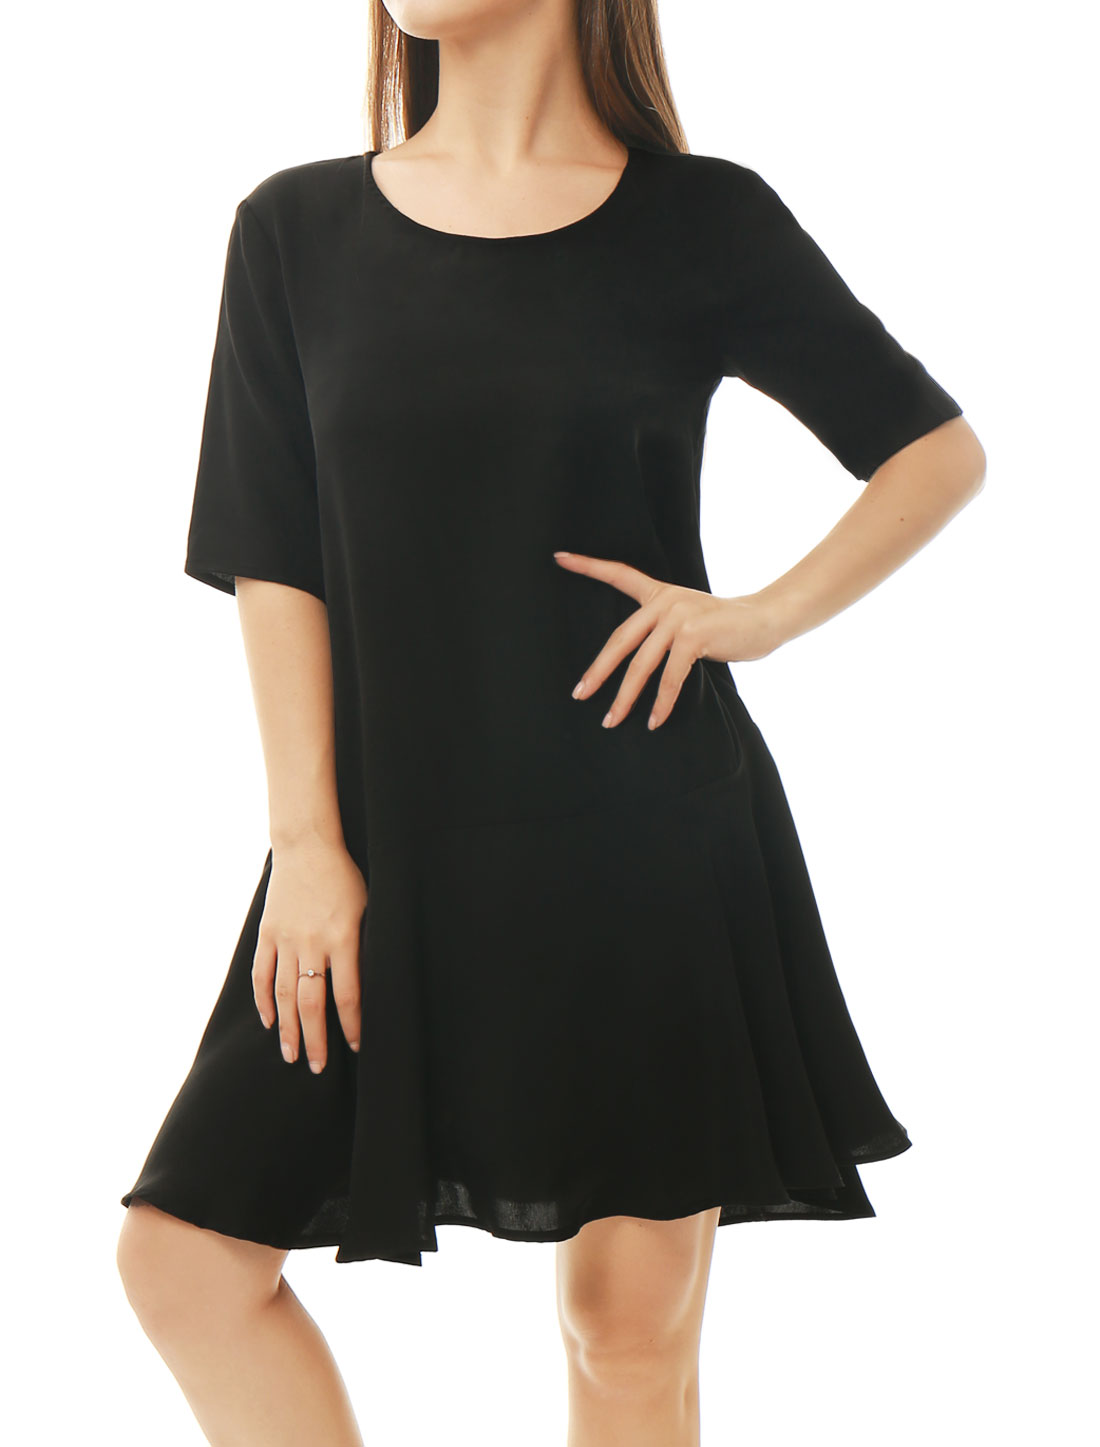 Women Half Sleeves Flouncing Hem Loose Mini Dress Black L